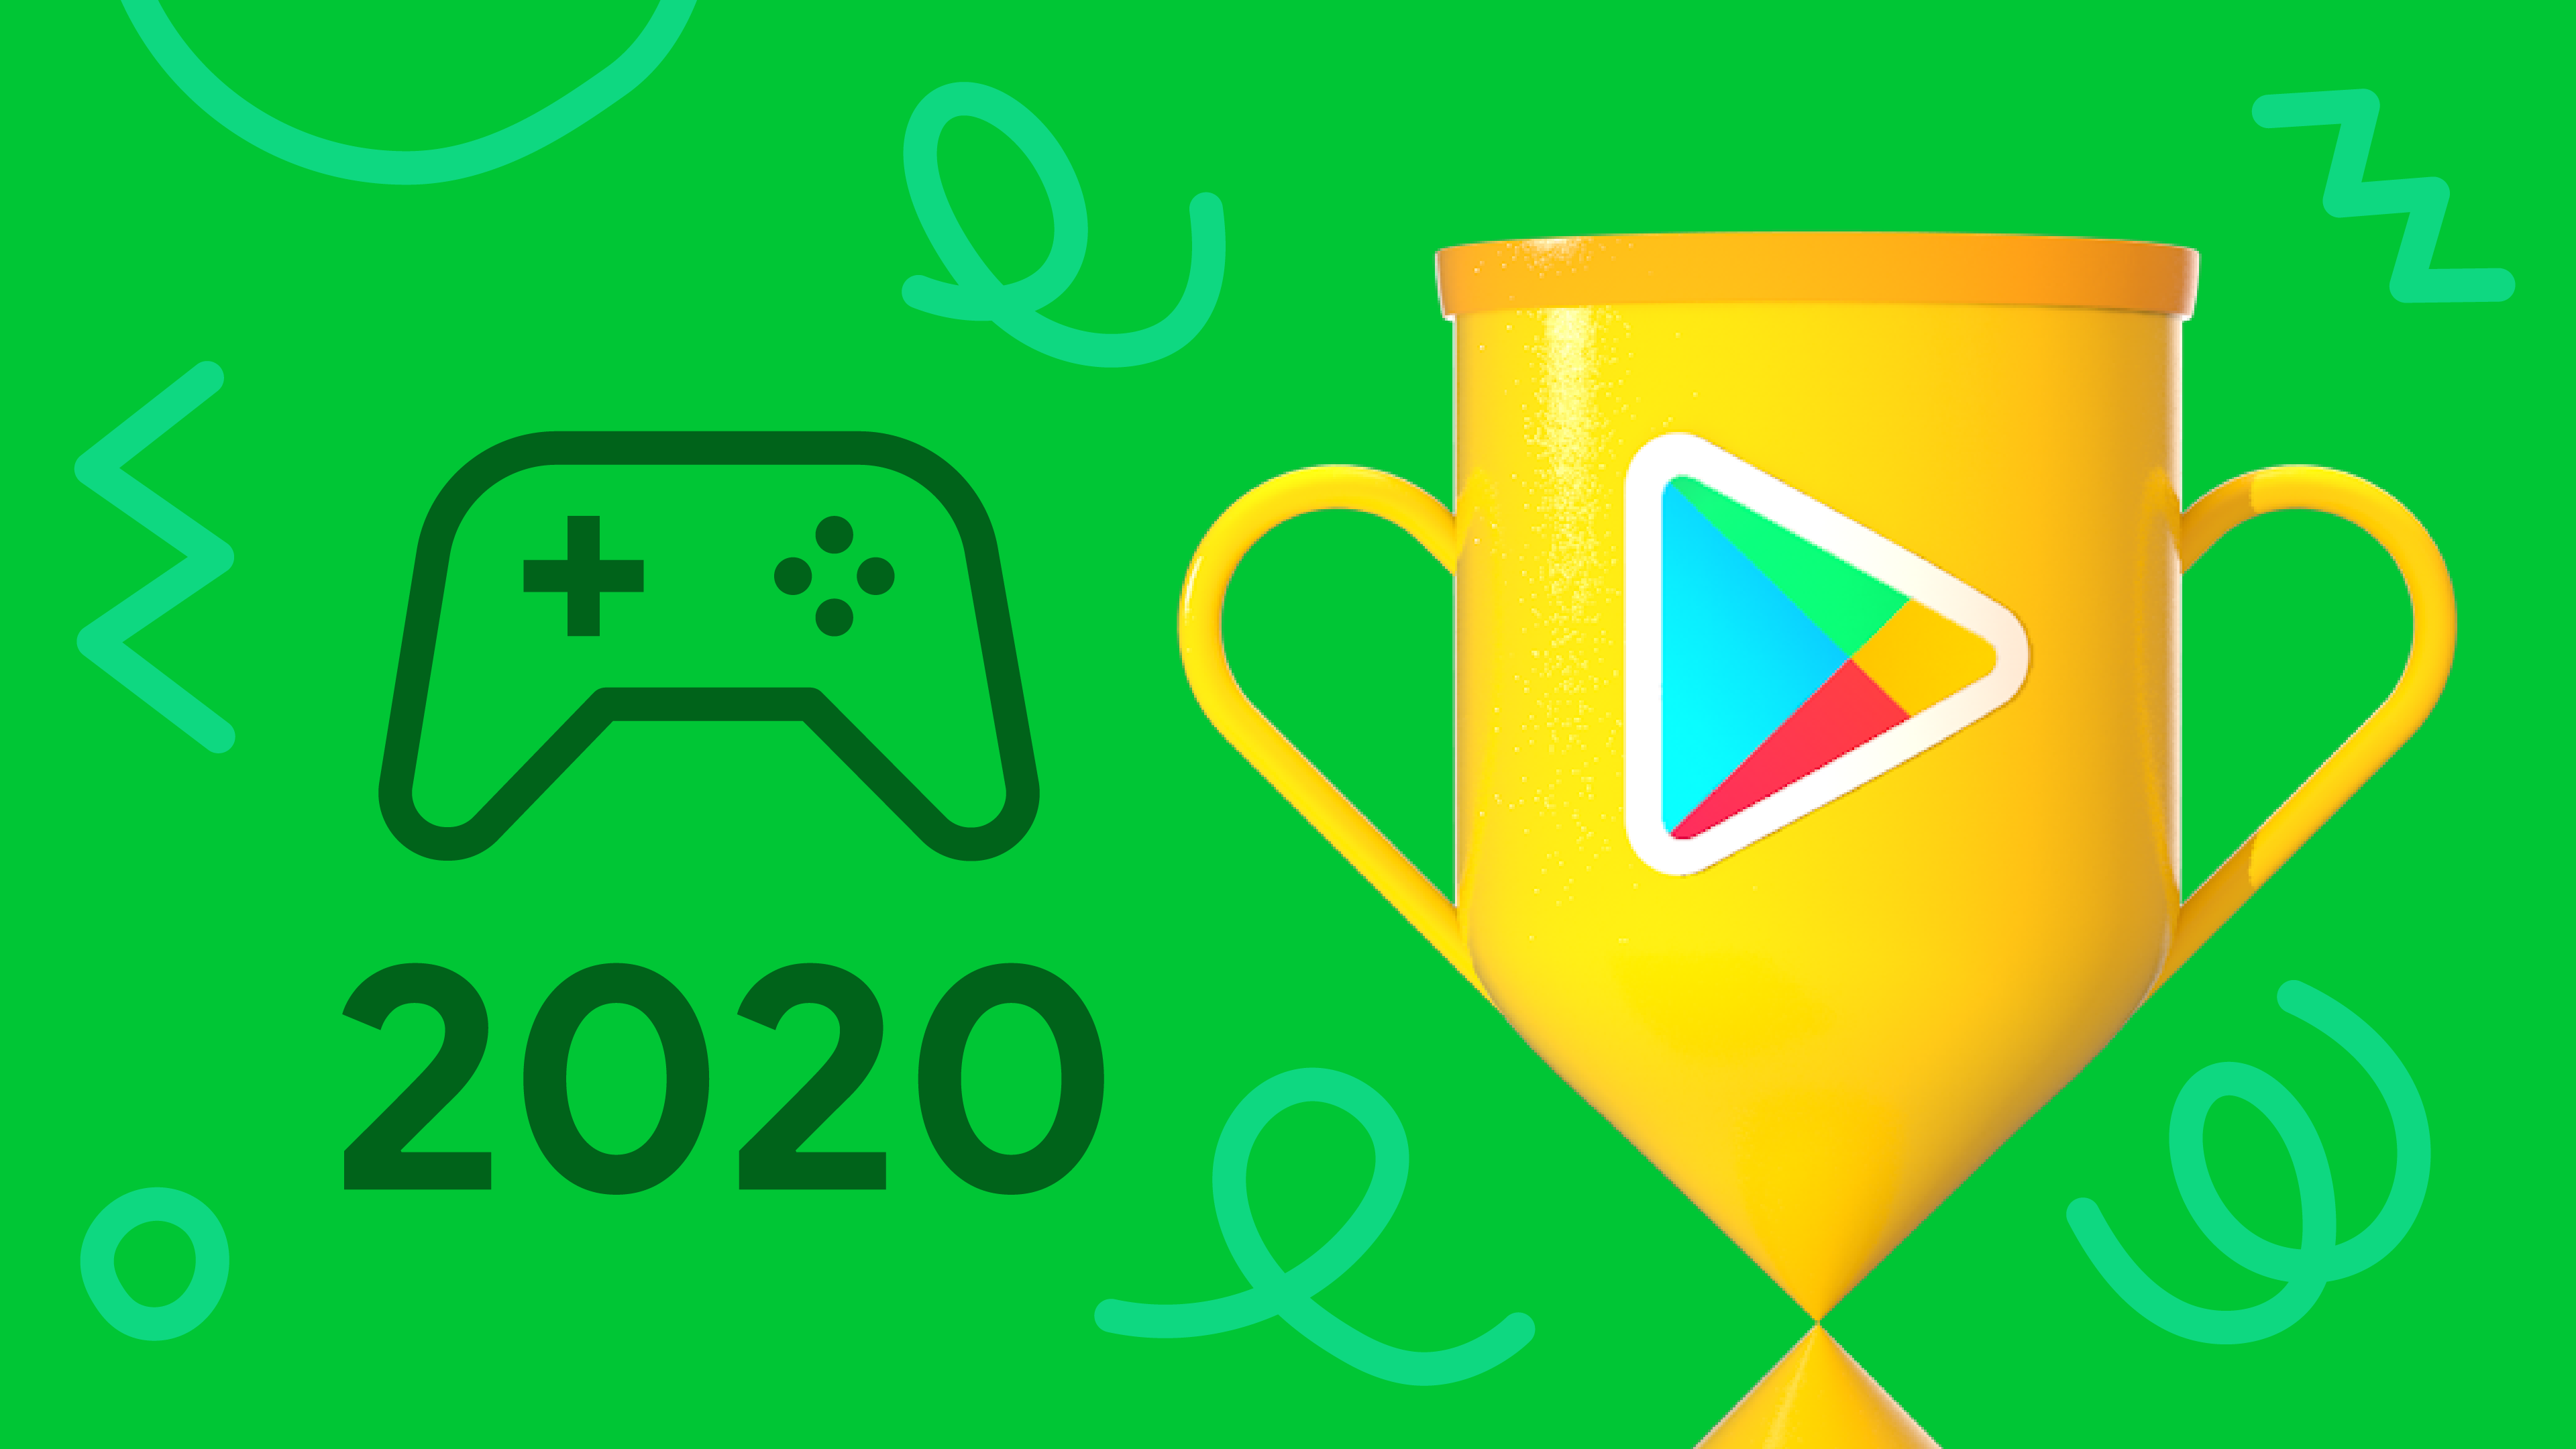 Best Games of 2020 in India Announced